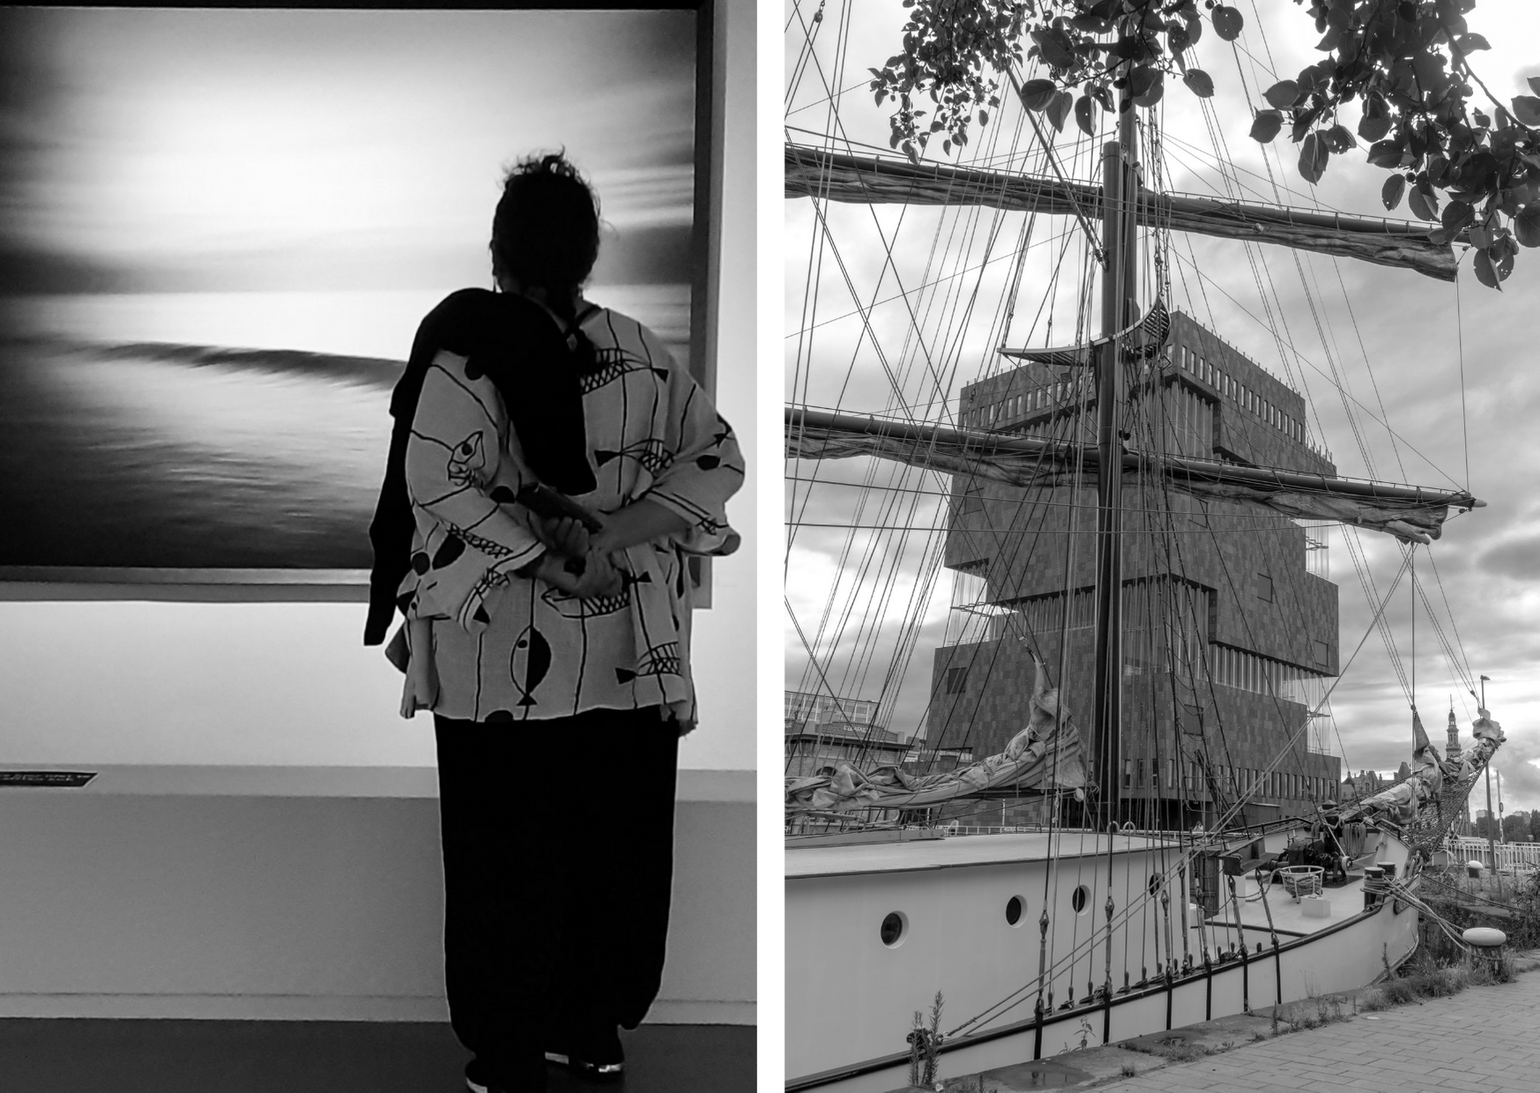 Antwerp in black and white: the Stephan Vanfleteren exhibition and a view of the MAS museum